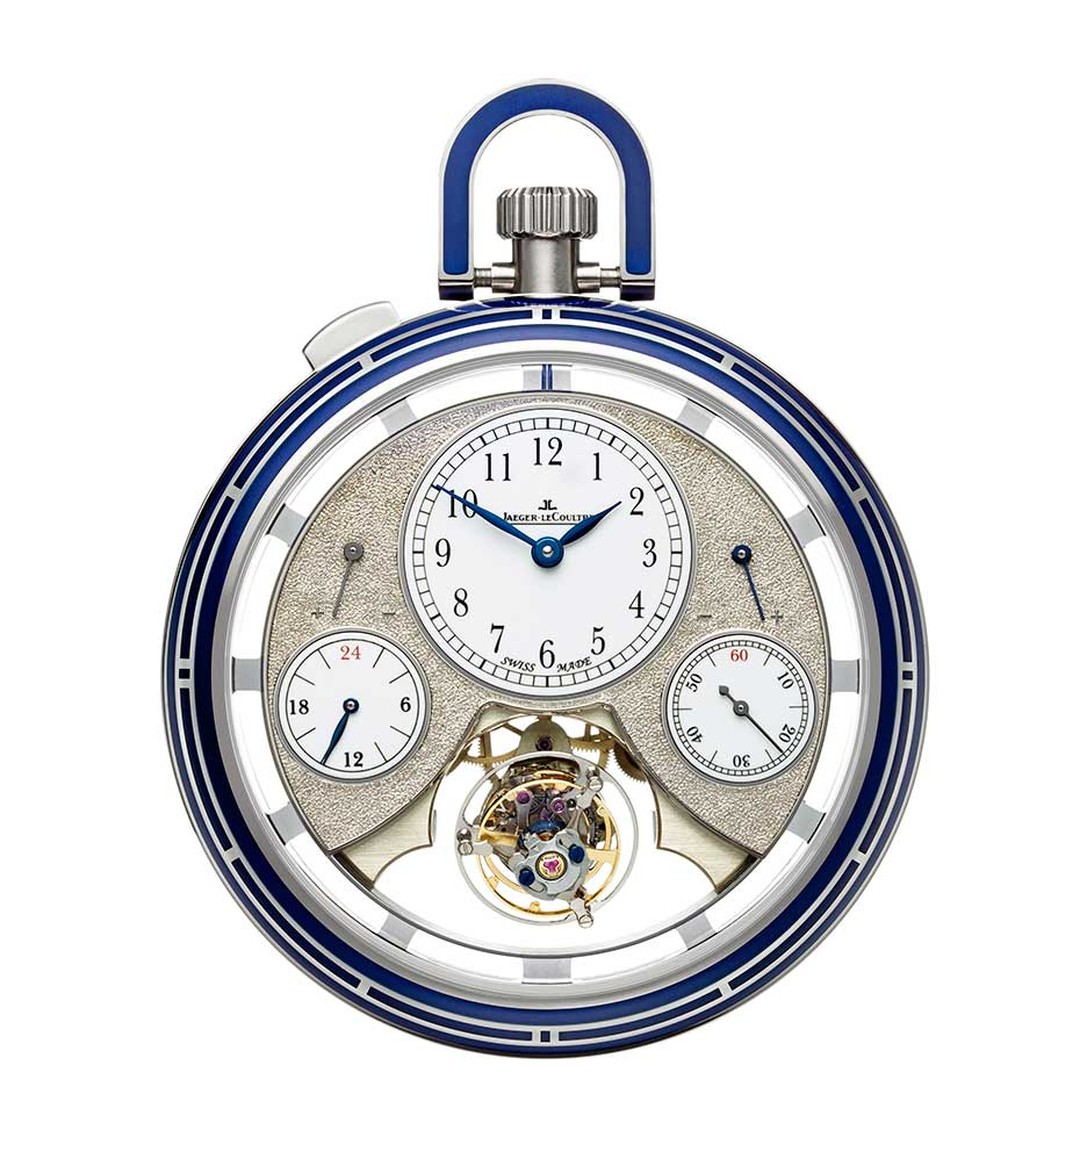 Jaeger-LeCoultre Duomètre Sphérotourbillon pocket watch is the first one to include a  spherical tourbillon.